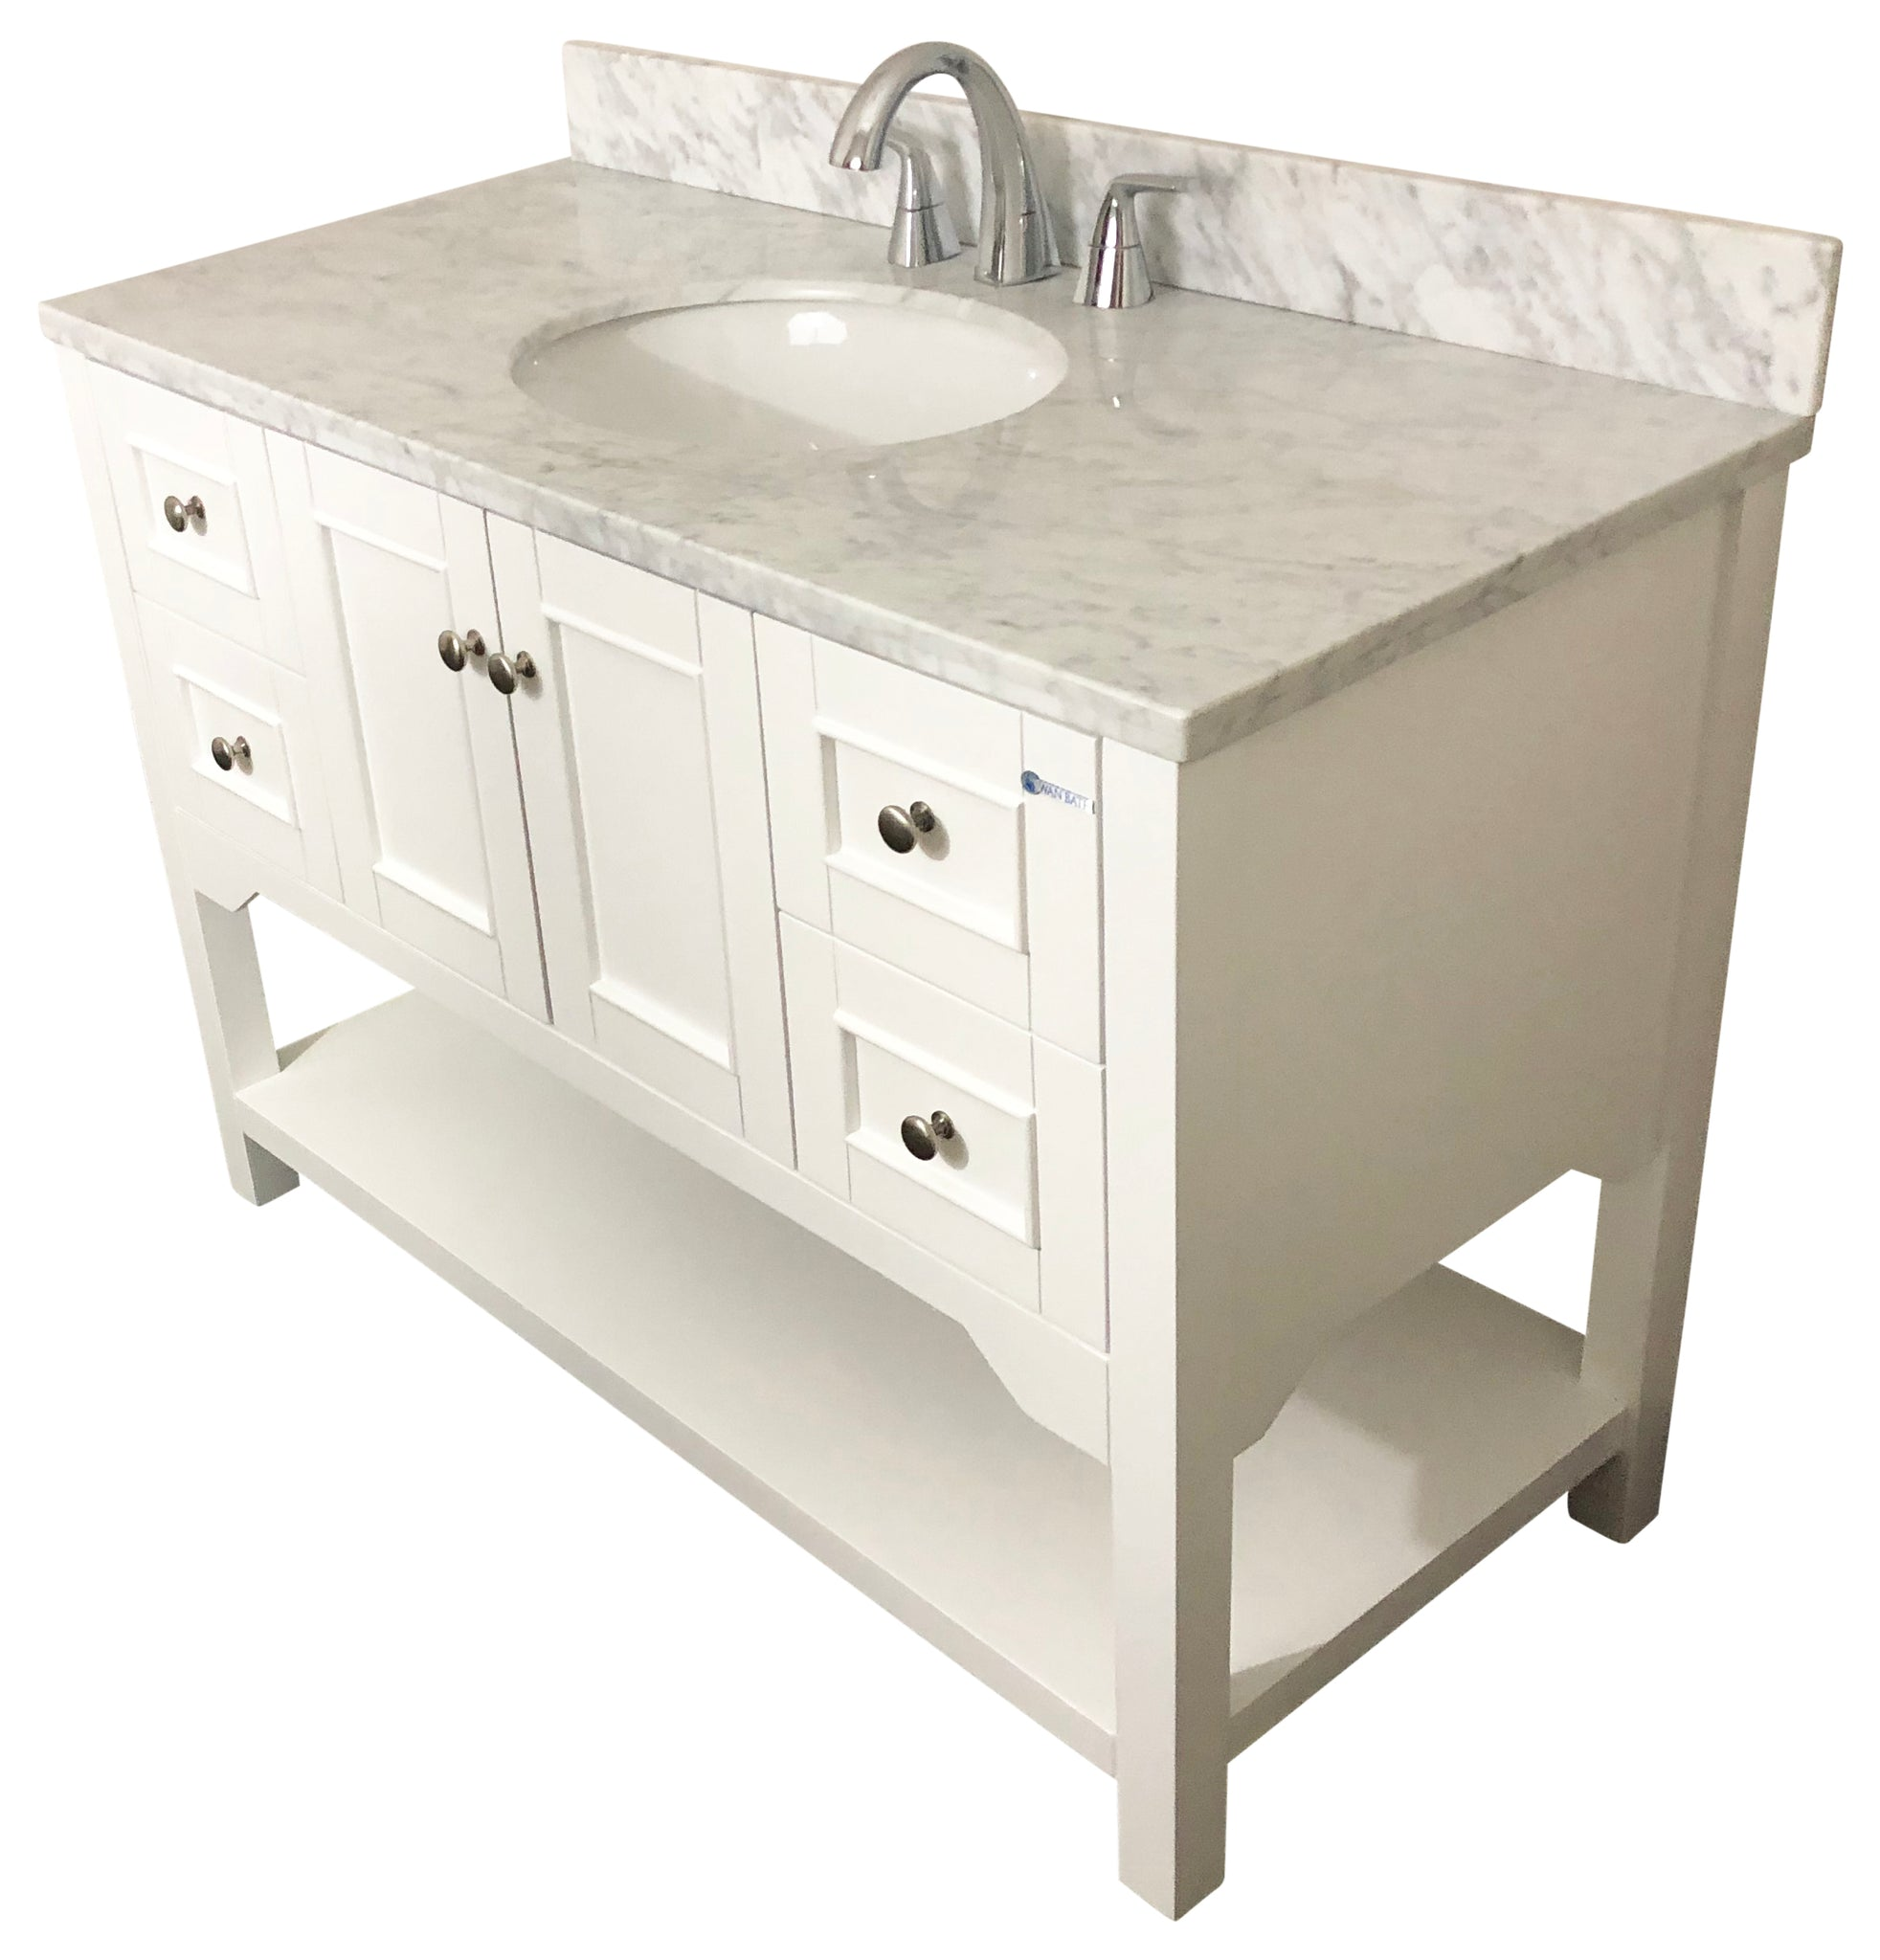 48 inch Solid Wood White Bathroom Vanity cabinet with Carrara Marble ...